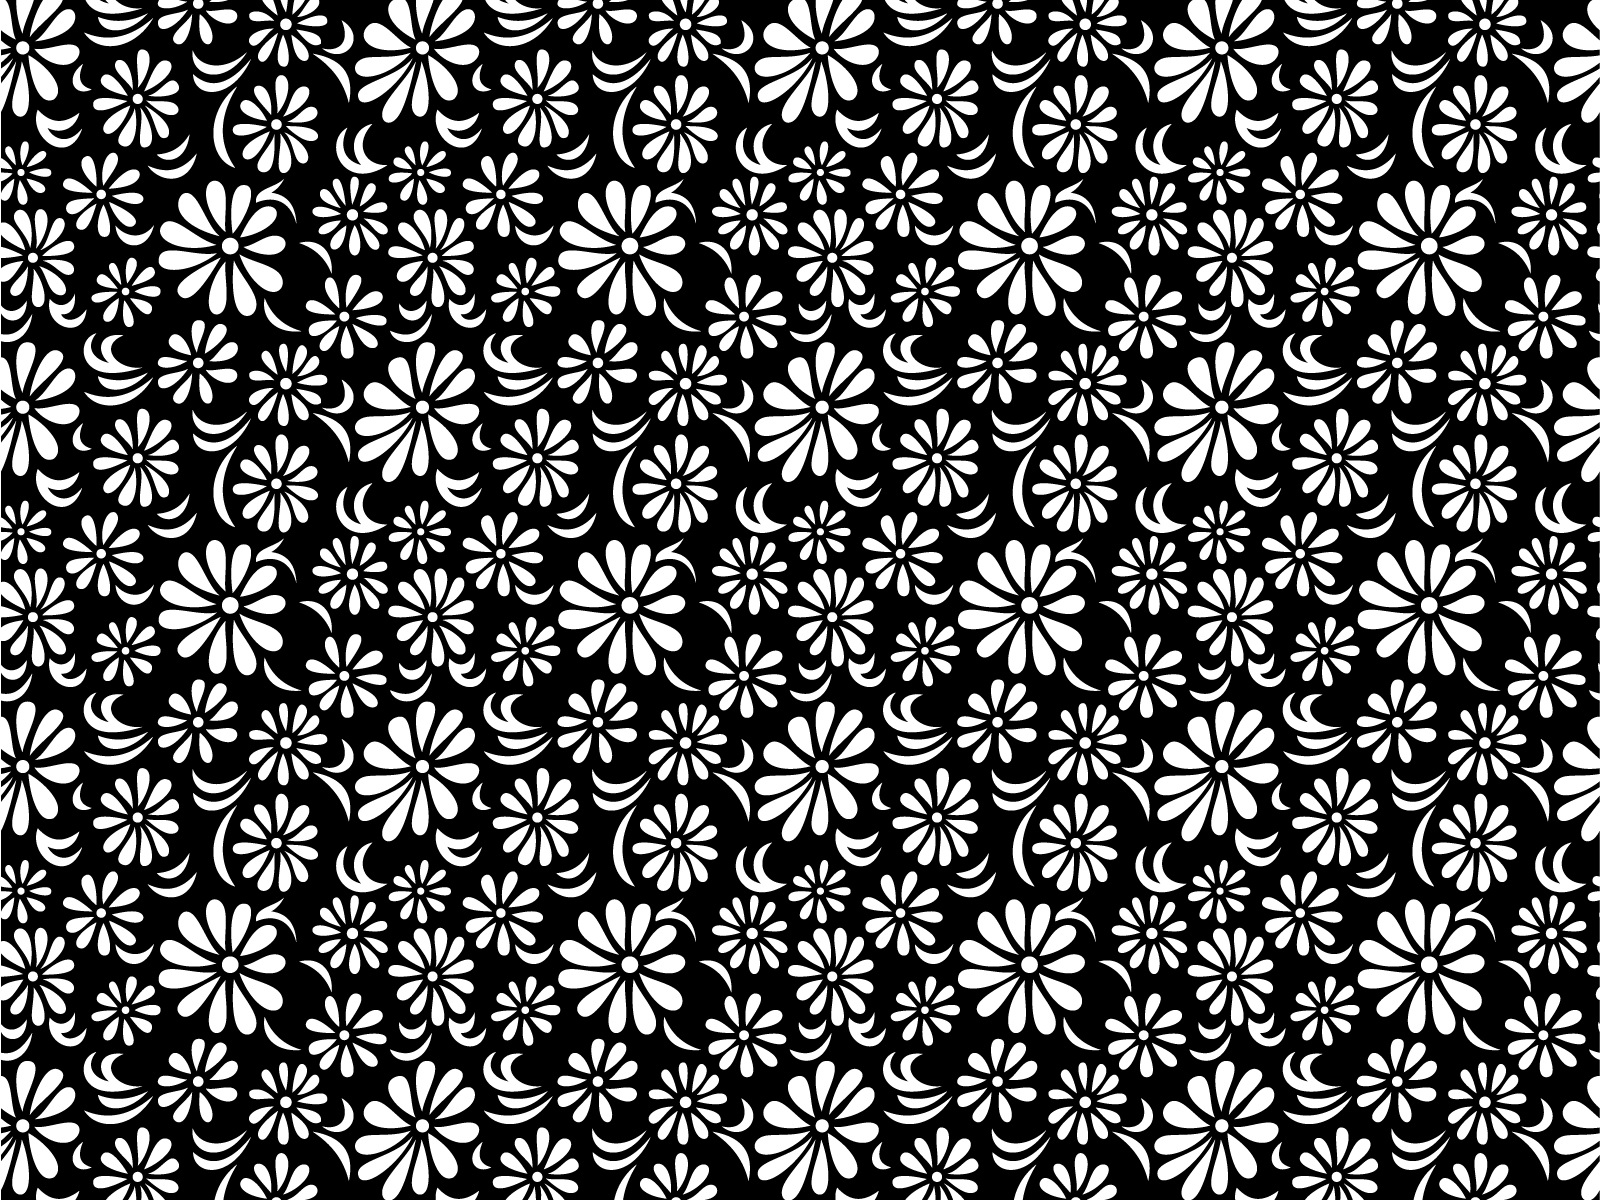 Flower Wallpaper Tumblr Black And White Bacalaureat2010fo